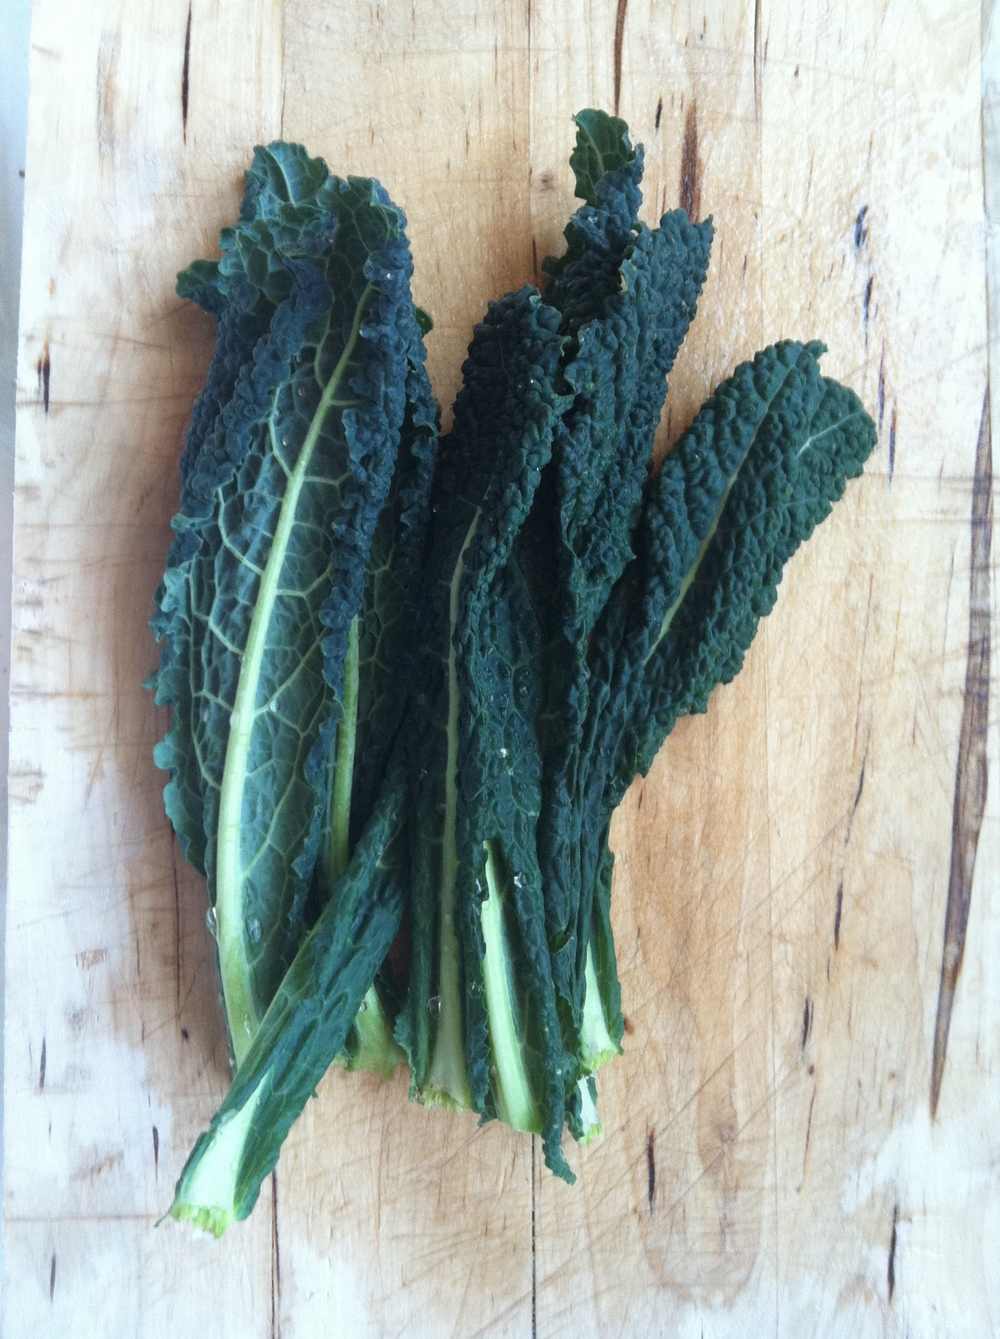 Dino Kale from Farm Fresh